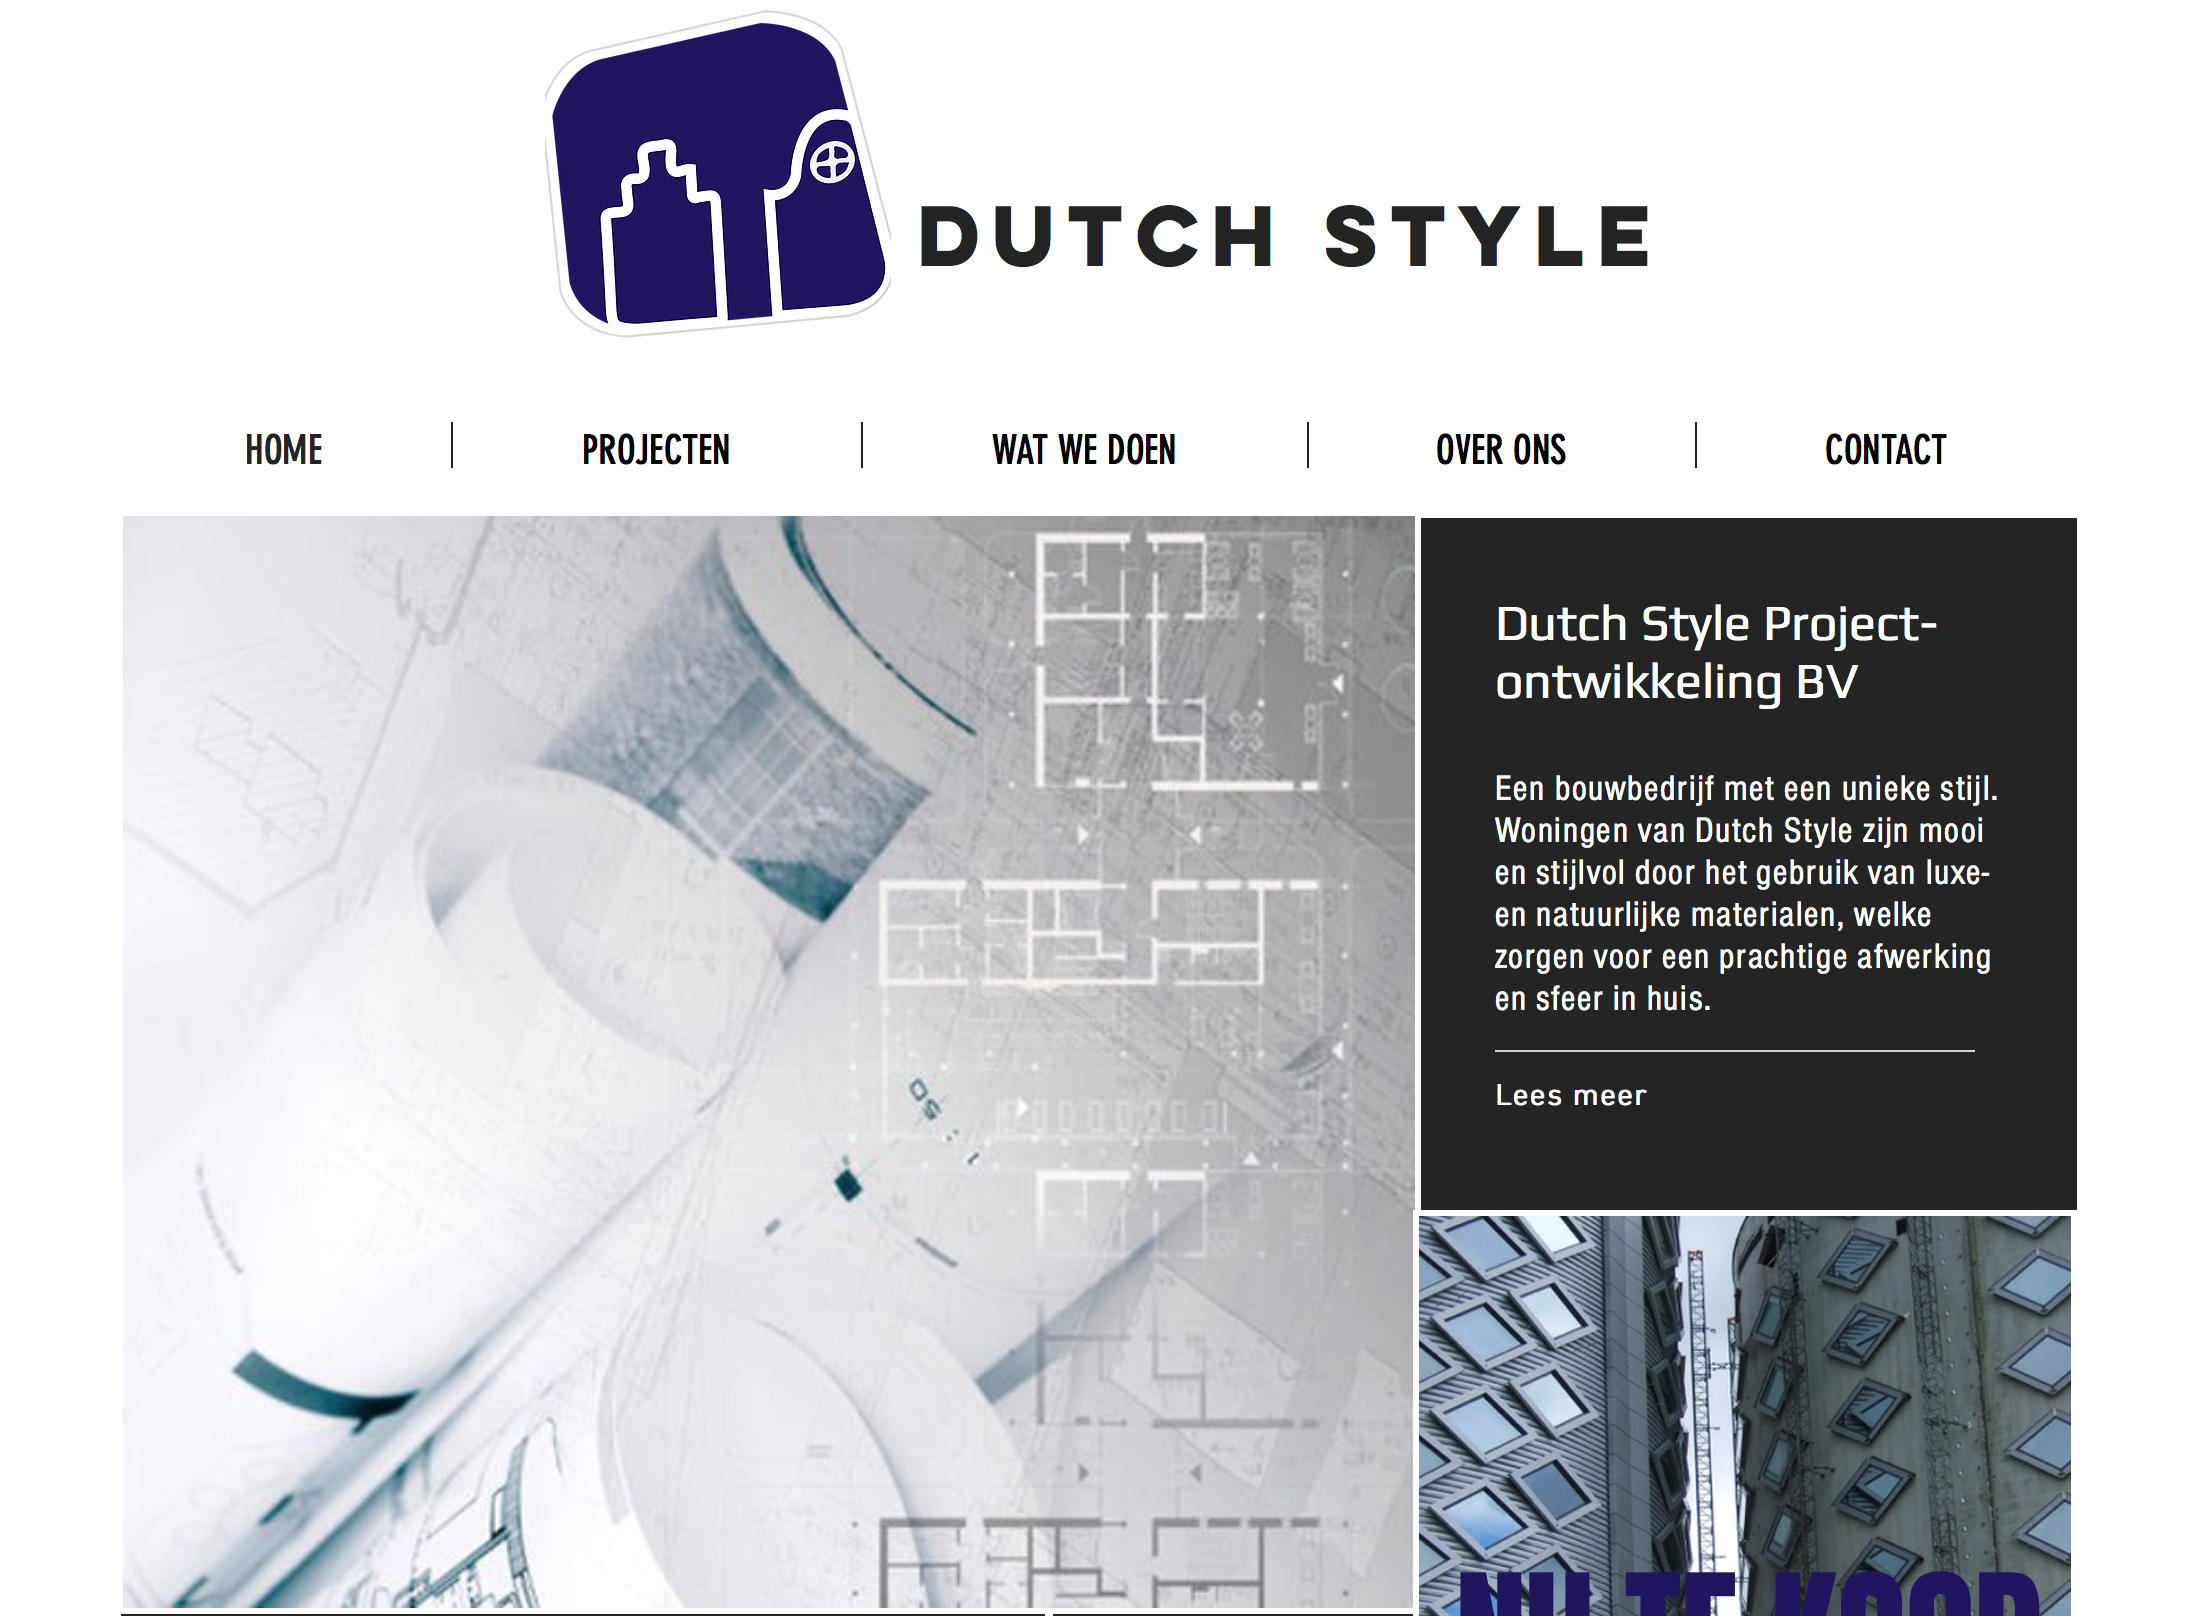 Dutch Style Projectontwikkeling BV